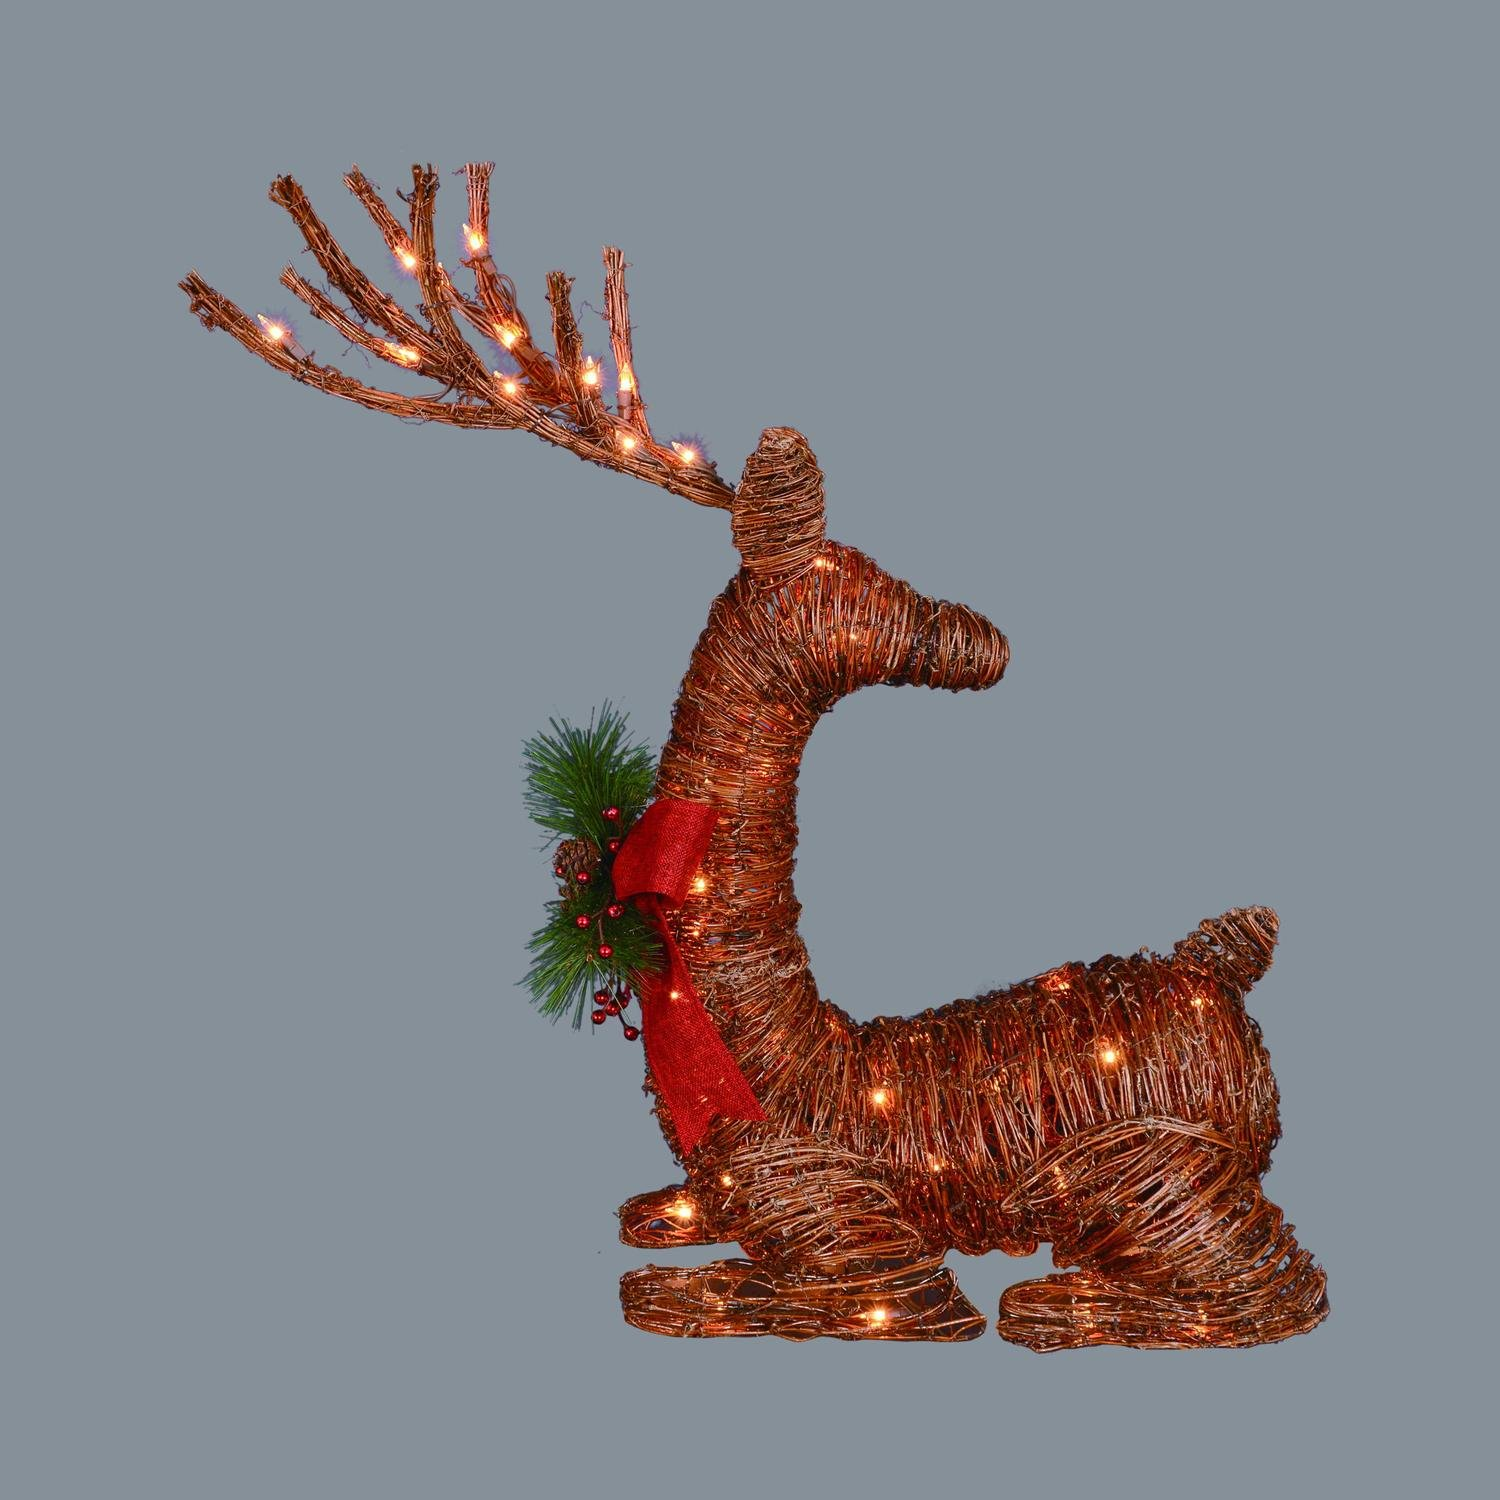 30'' Lighted Rattan Reindeer with Red Bow and Pine Cones Christmas Yard Art Decoration